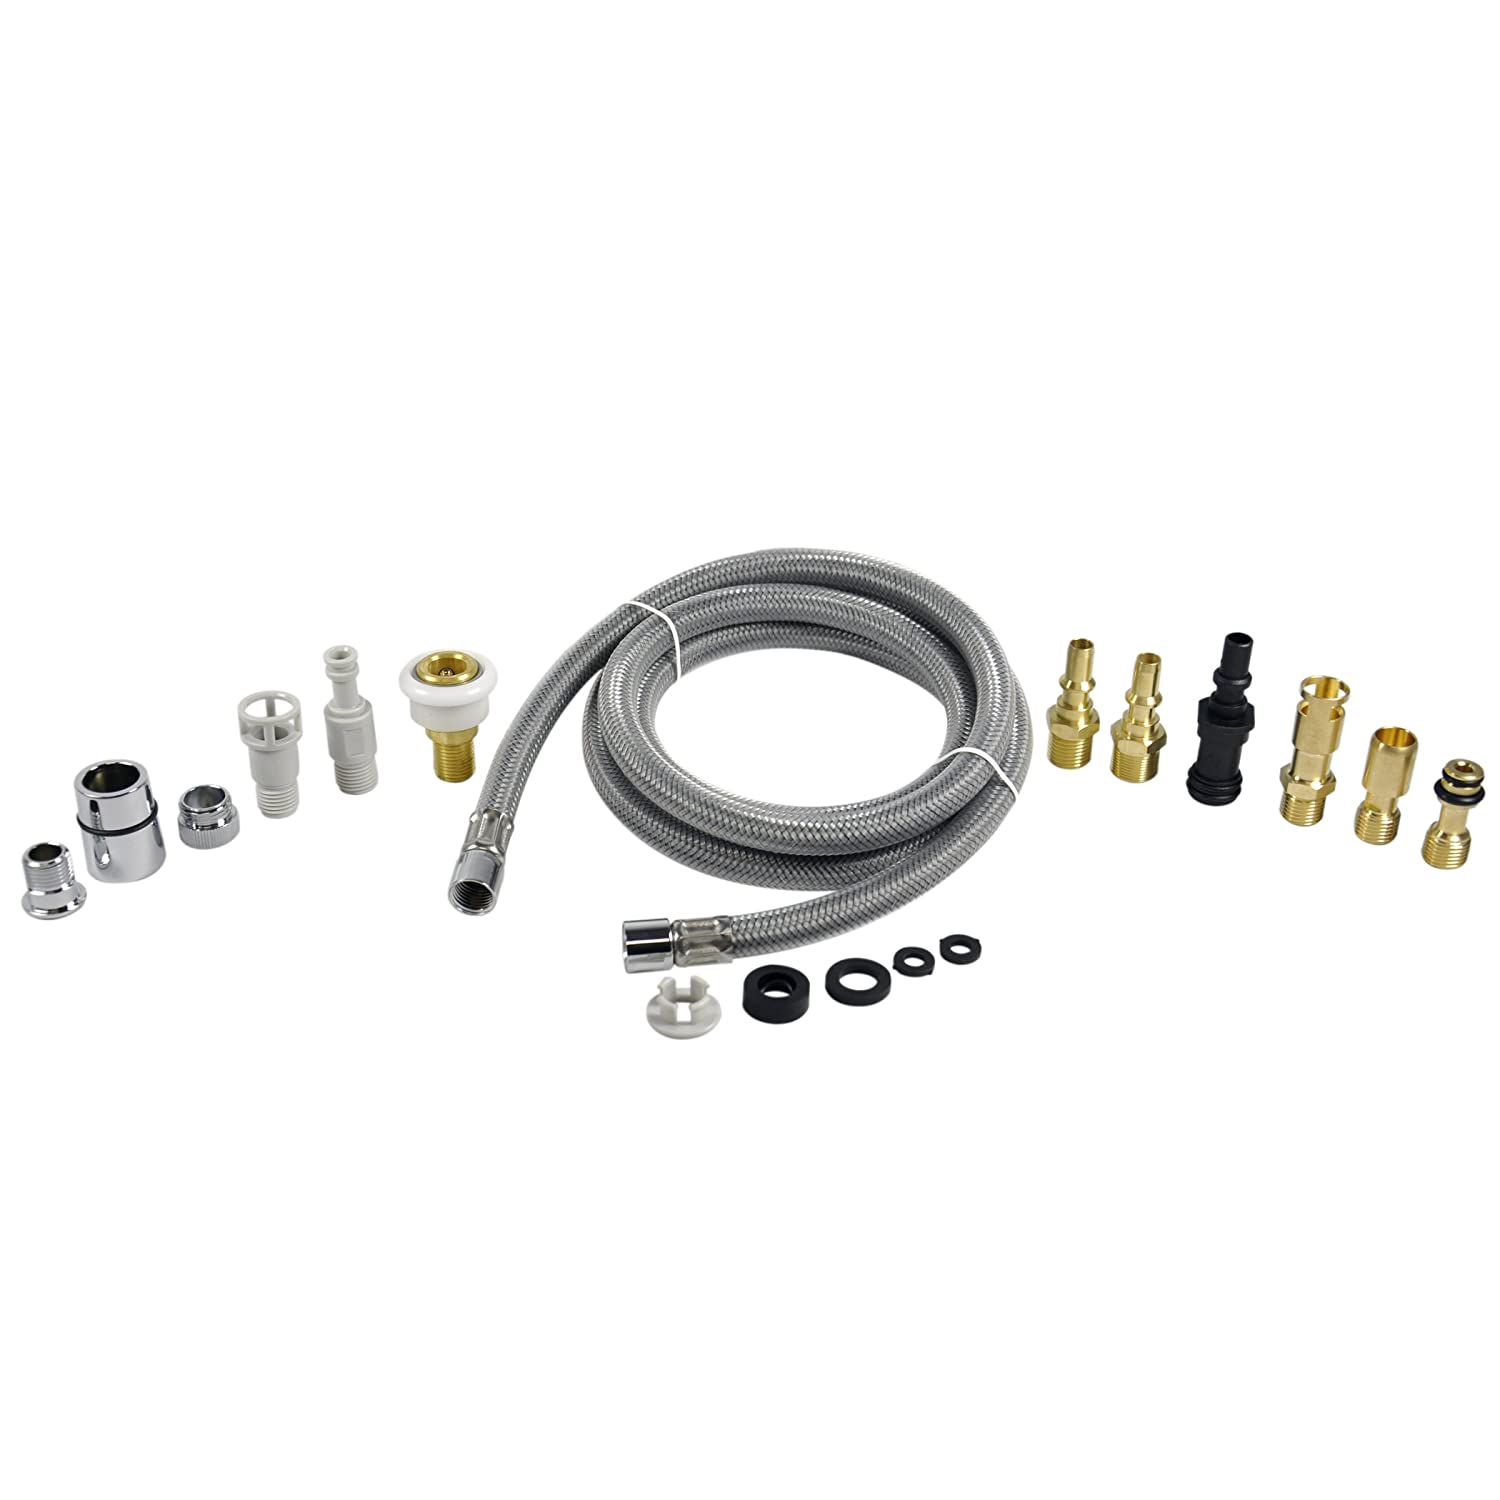 Danco NEW Faucet Pull-Out Spray Hose Kit for Kitchen Pullout Sprayer Heads, 10912